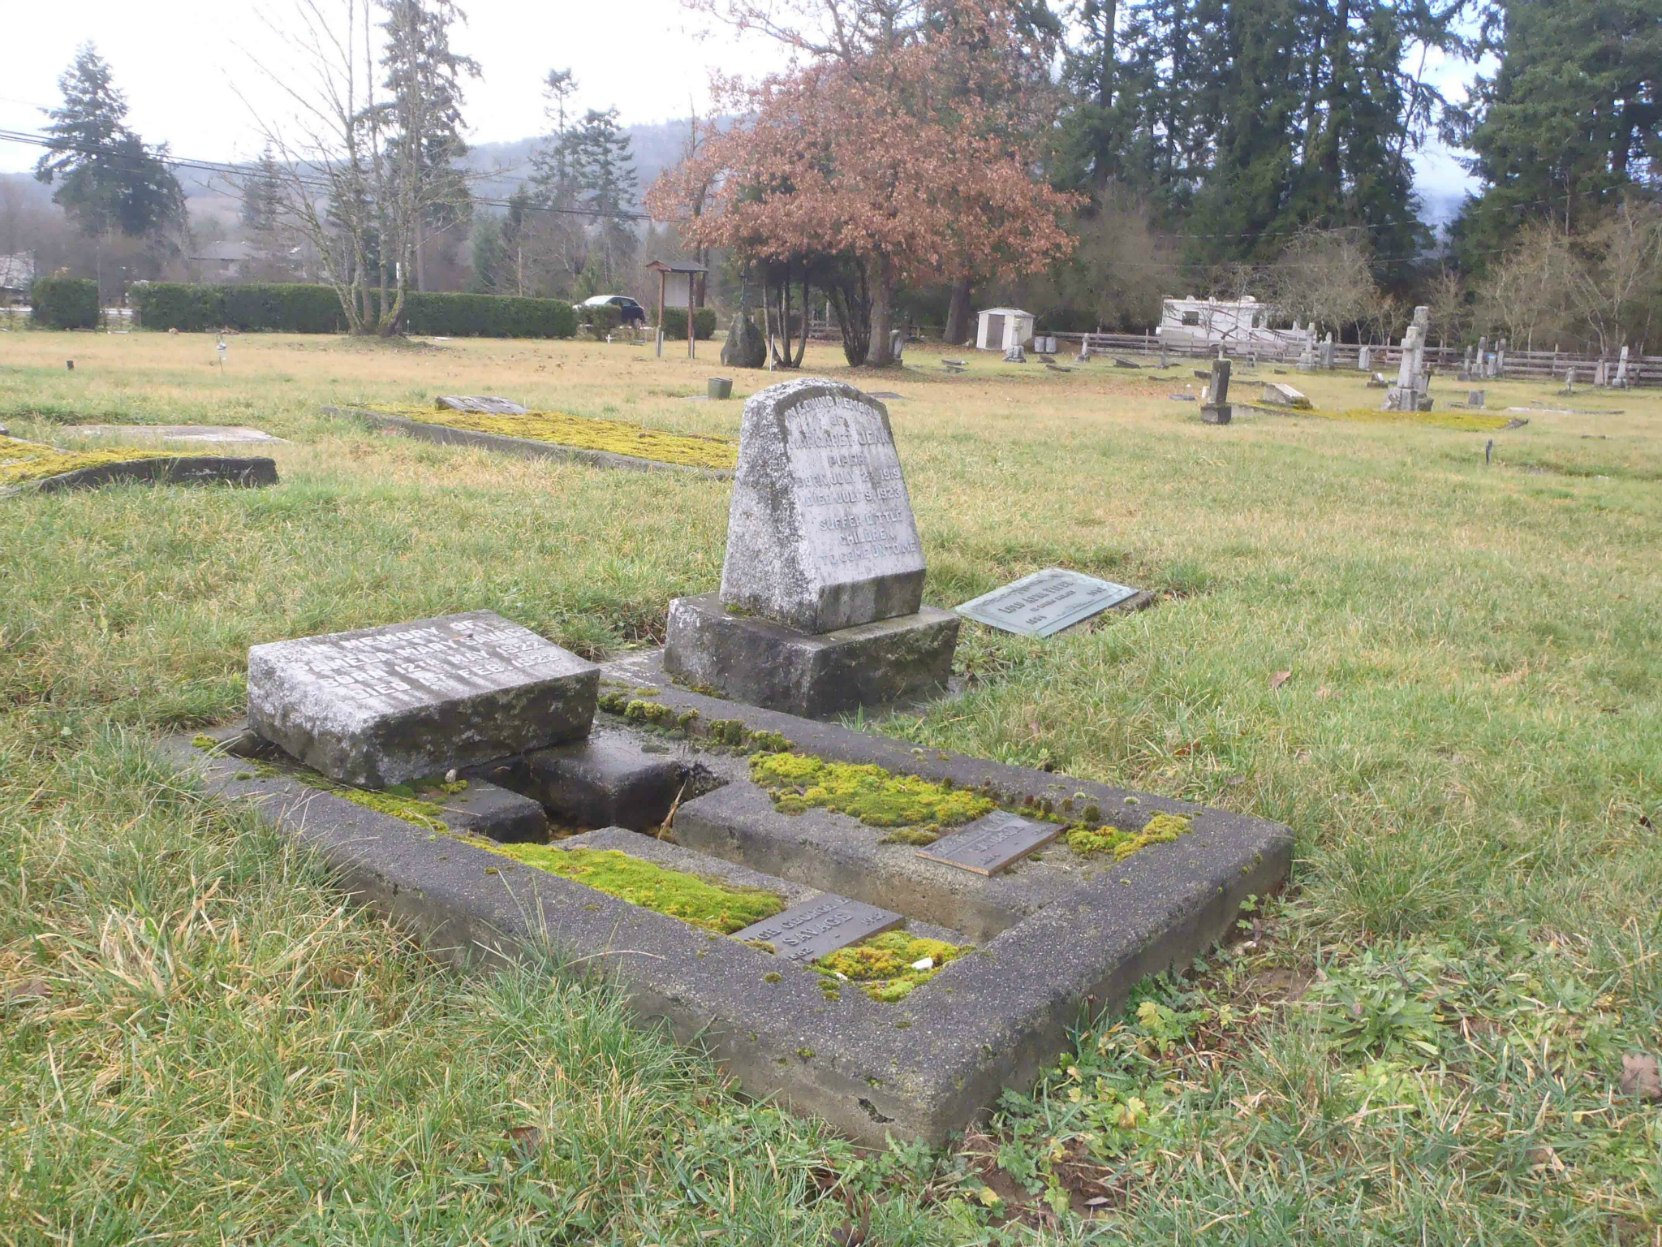 Hugh George Savage, family grave, St. Mary's Somenos Anglican Cemetery, North Cowichan, B.C.